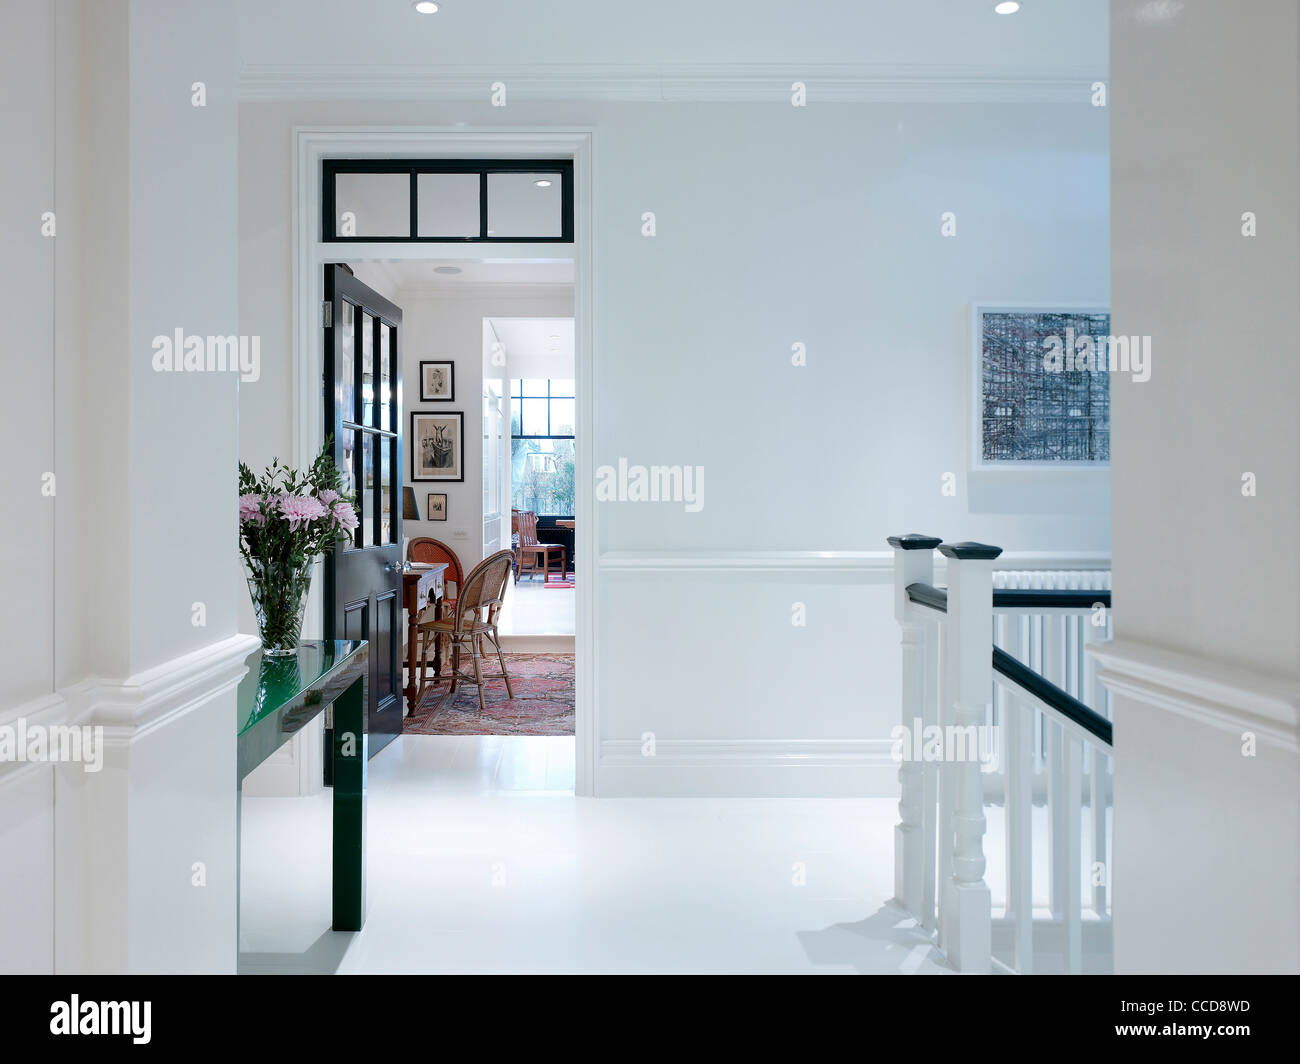 Refurbishment of an apartment in central london stock image